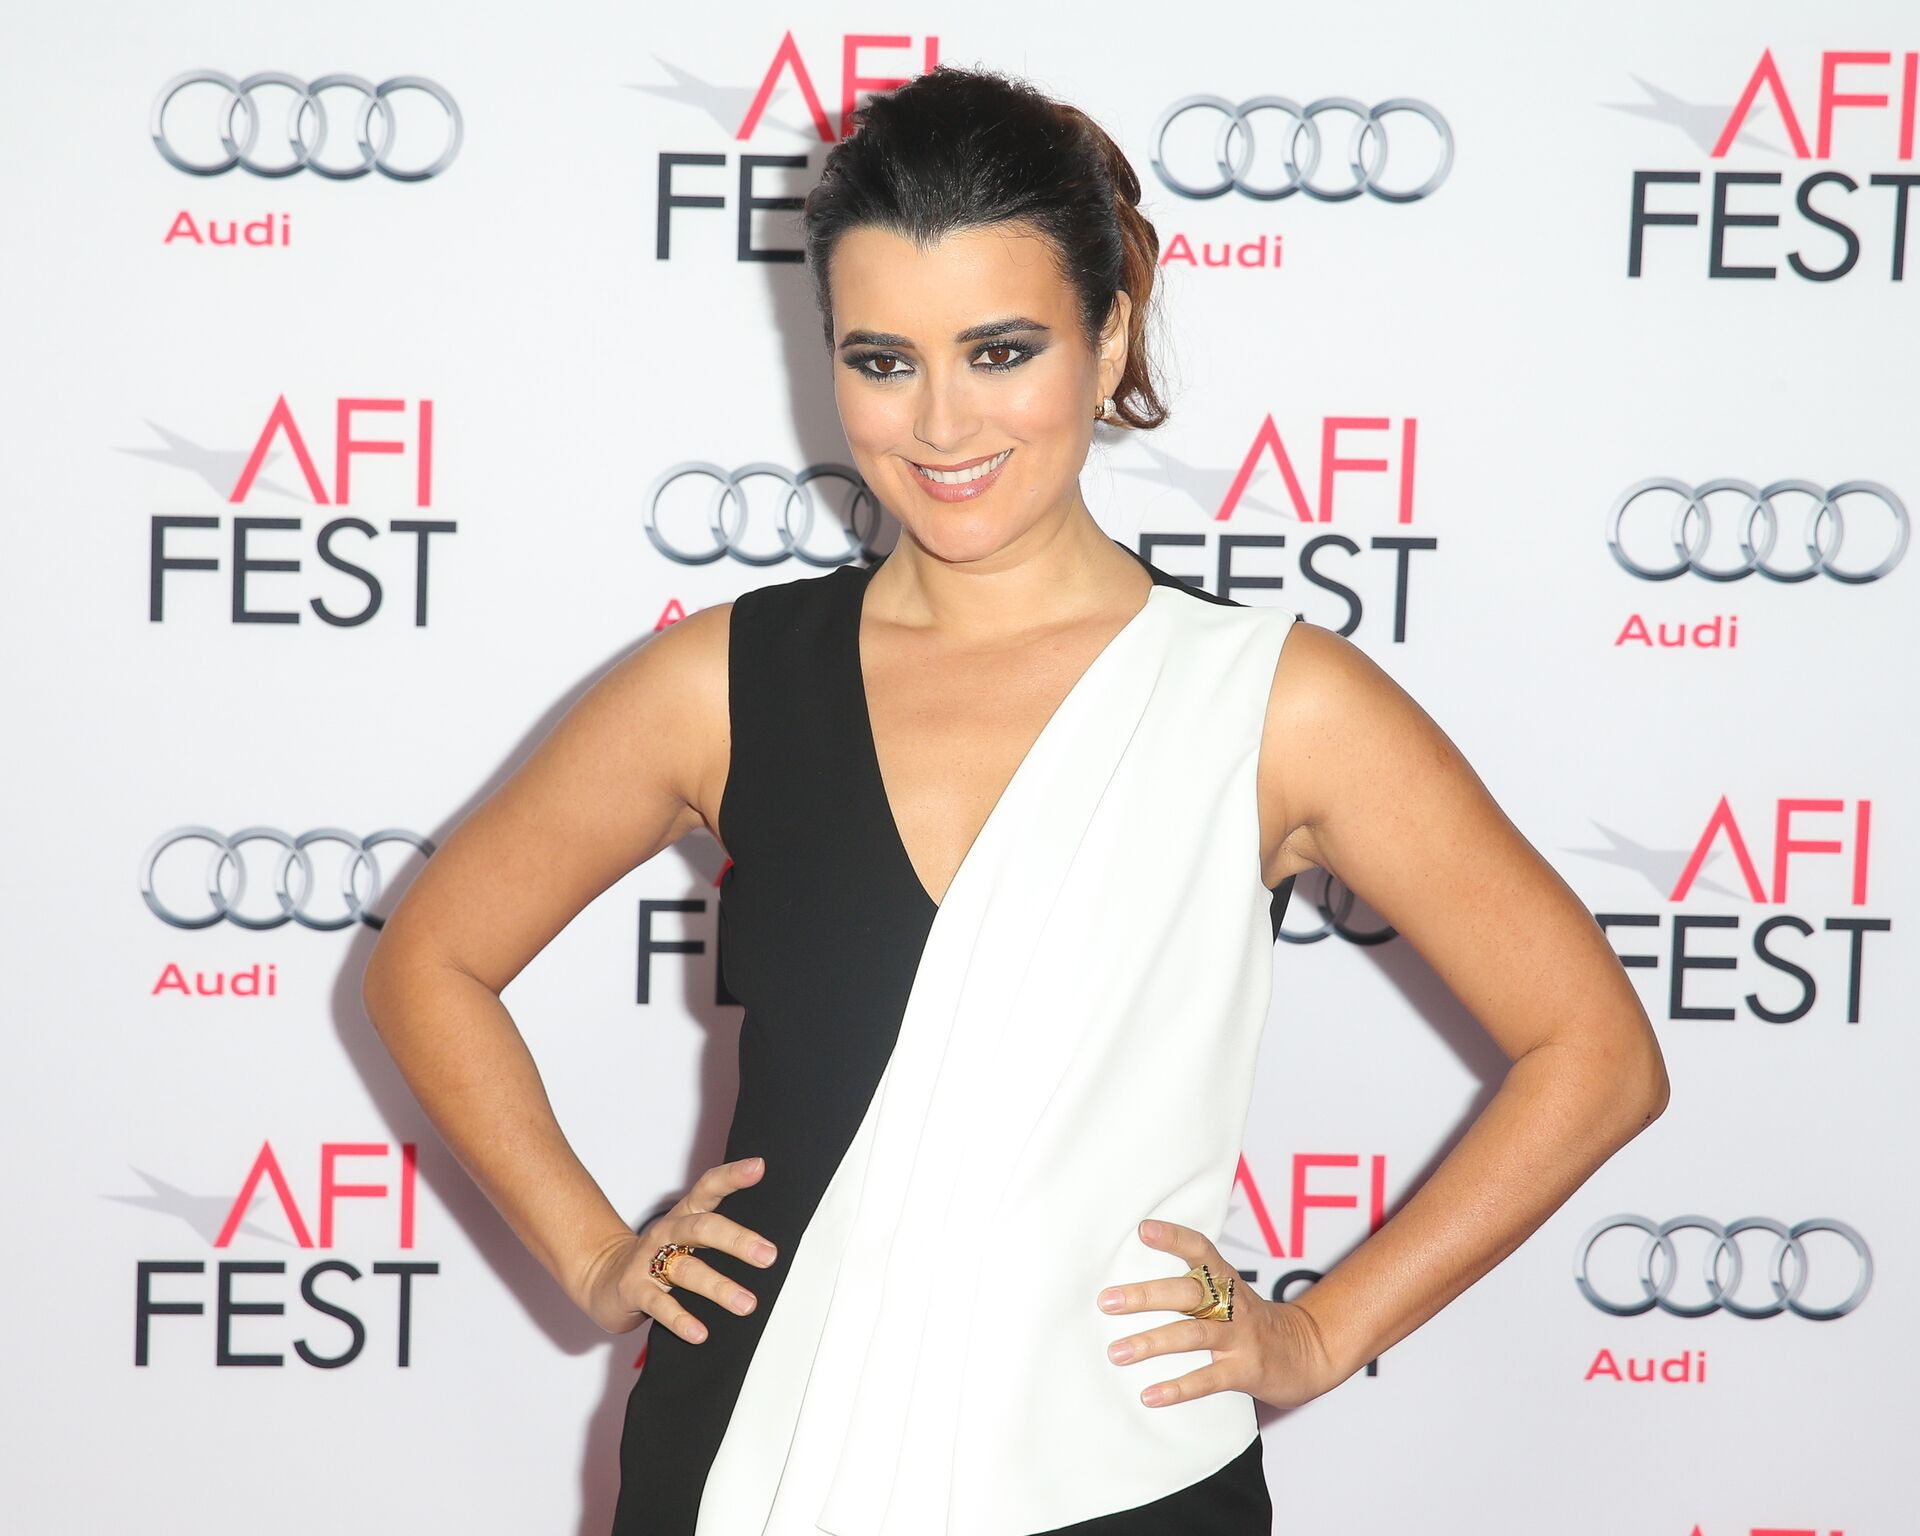 Actress Cote de Pablo attends the Centerpiece Gala premiere of Alcon Entertainment's 'The 33' at TCL Chinese Theatre | Getty Images / Global Images Ukraine